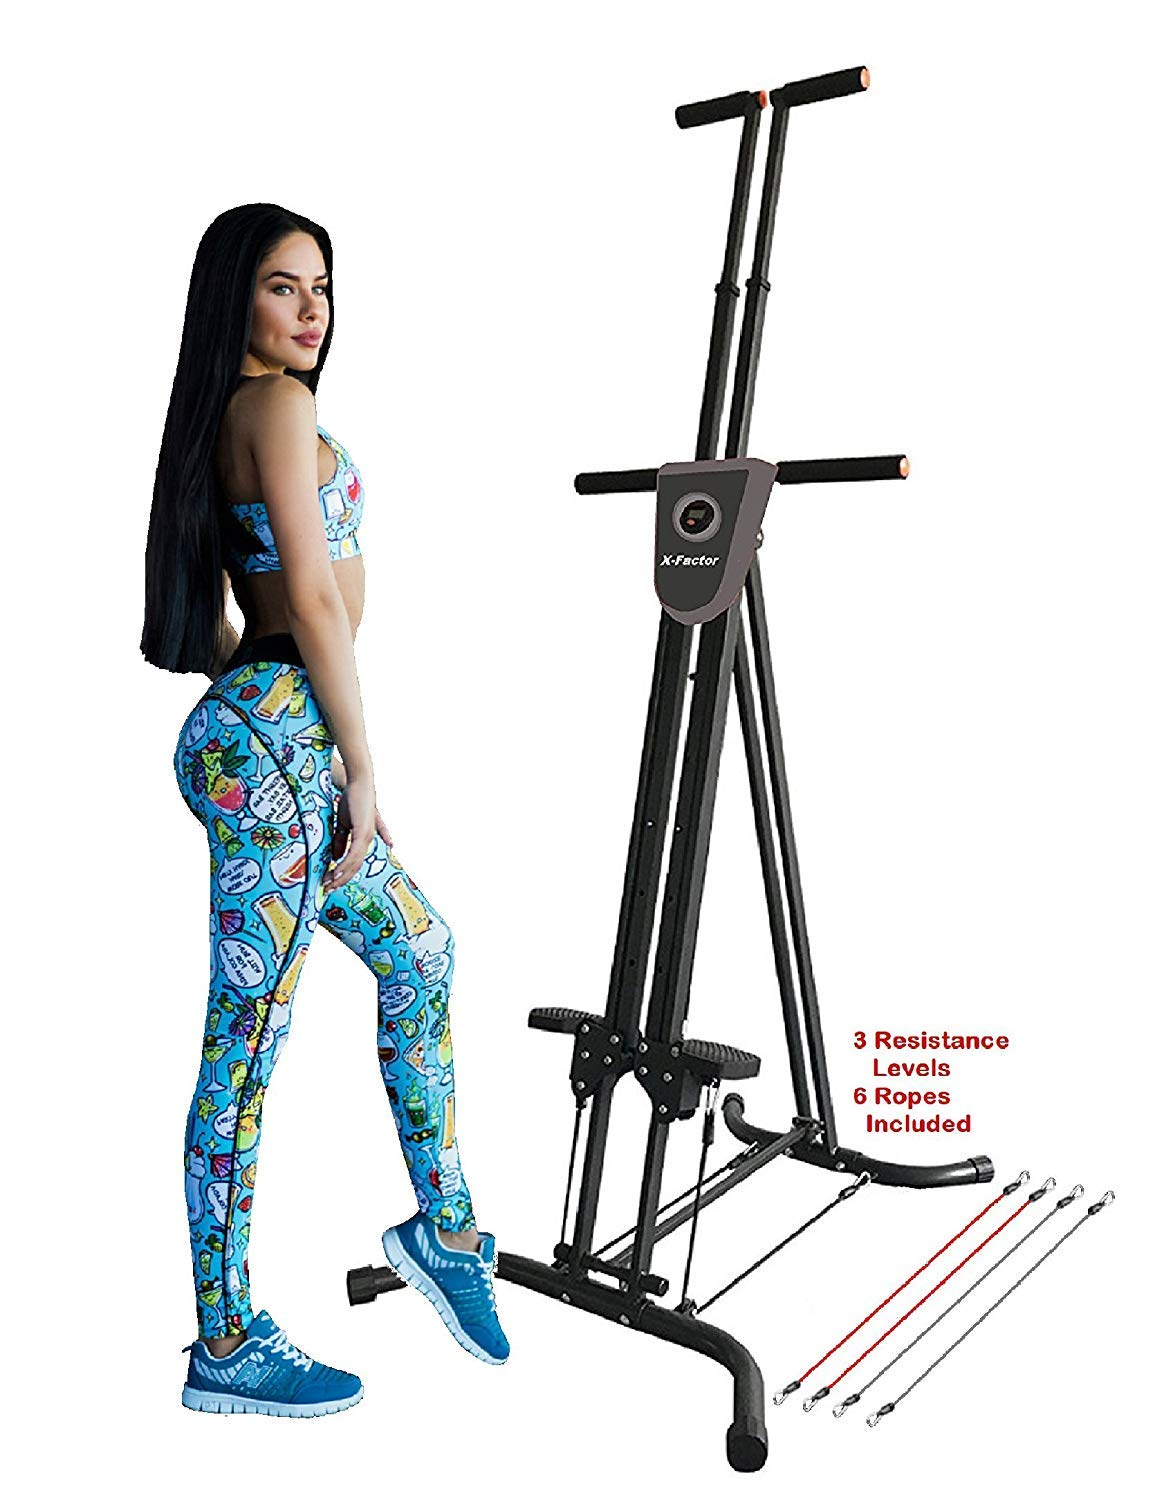 XファクタークライマーカーディオエクササイズVertical Climber Cardio Exercise X-Factor with monitor and resistance straps for smooth climbing   B07DTLDJMM